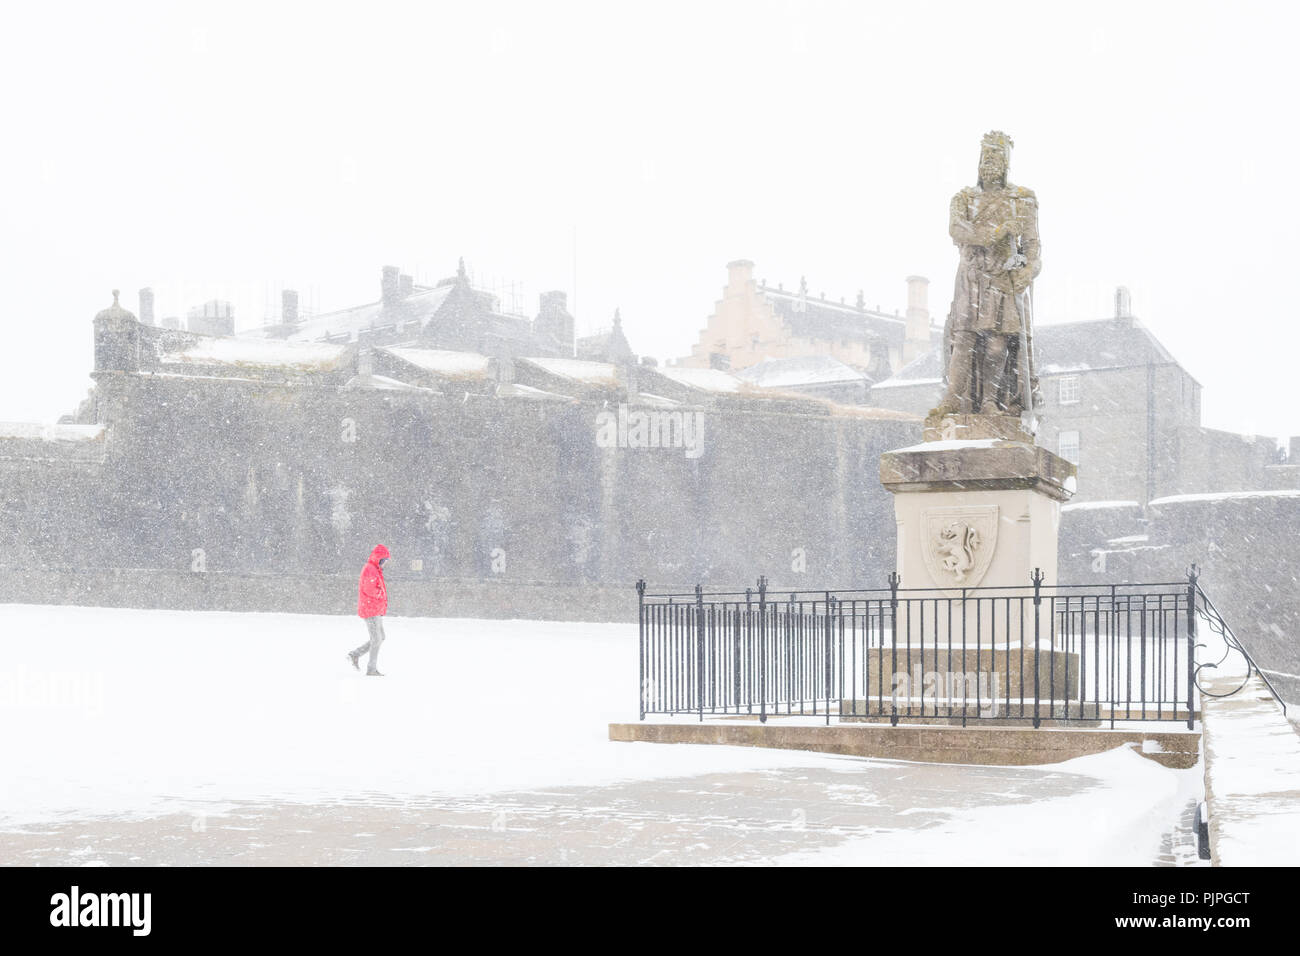 Stirling Castle in snow - castle was closed due to heavy snowfall - 2018 beast from the east - Stock Image